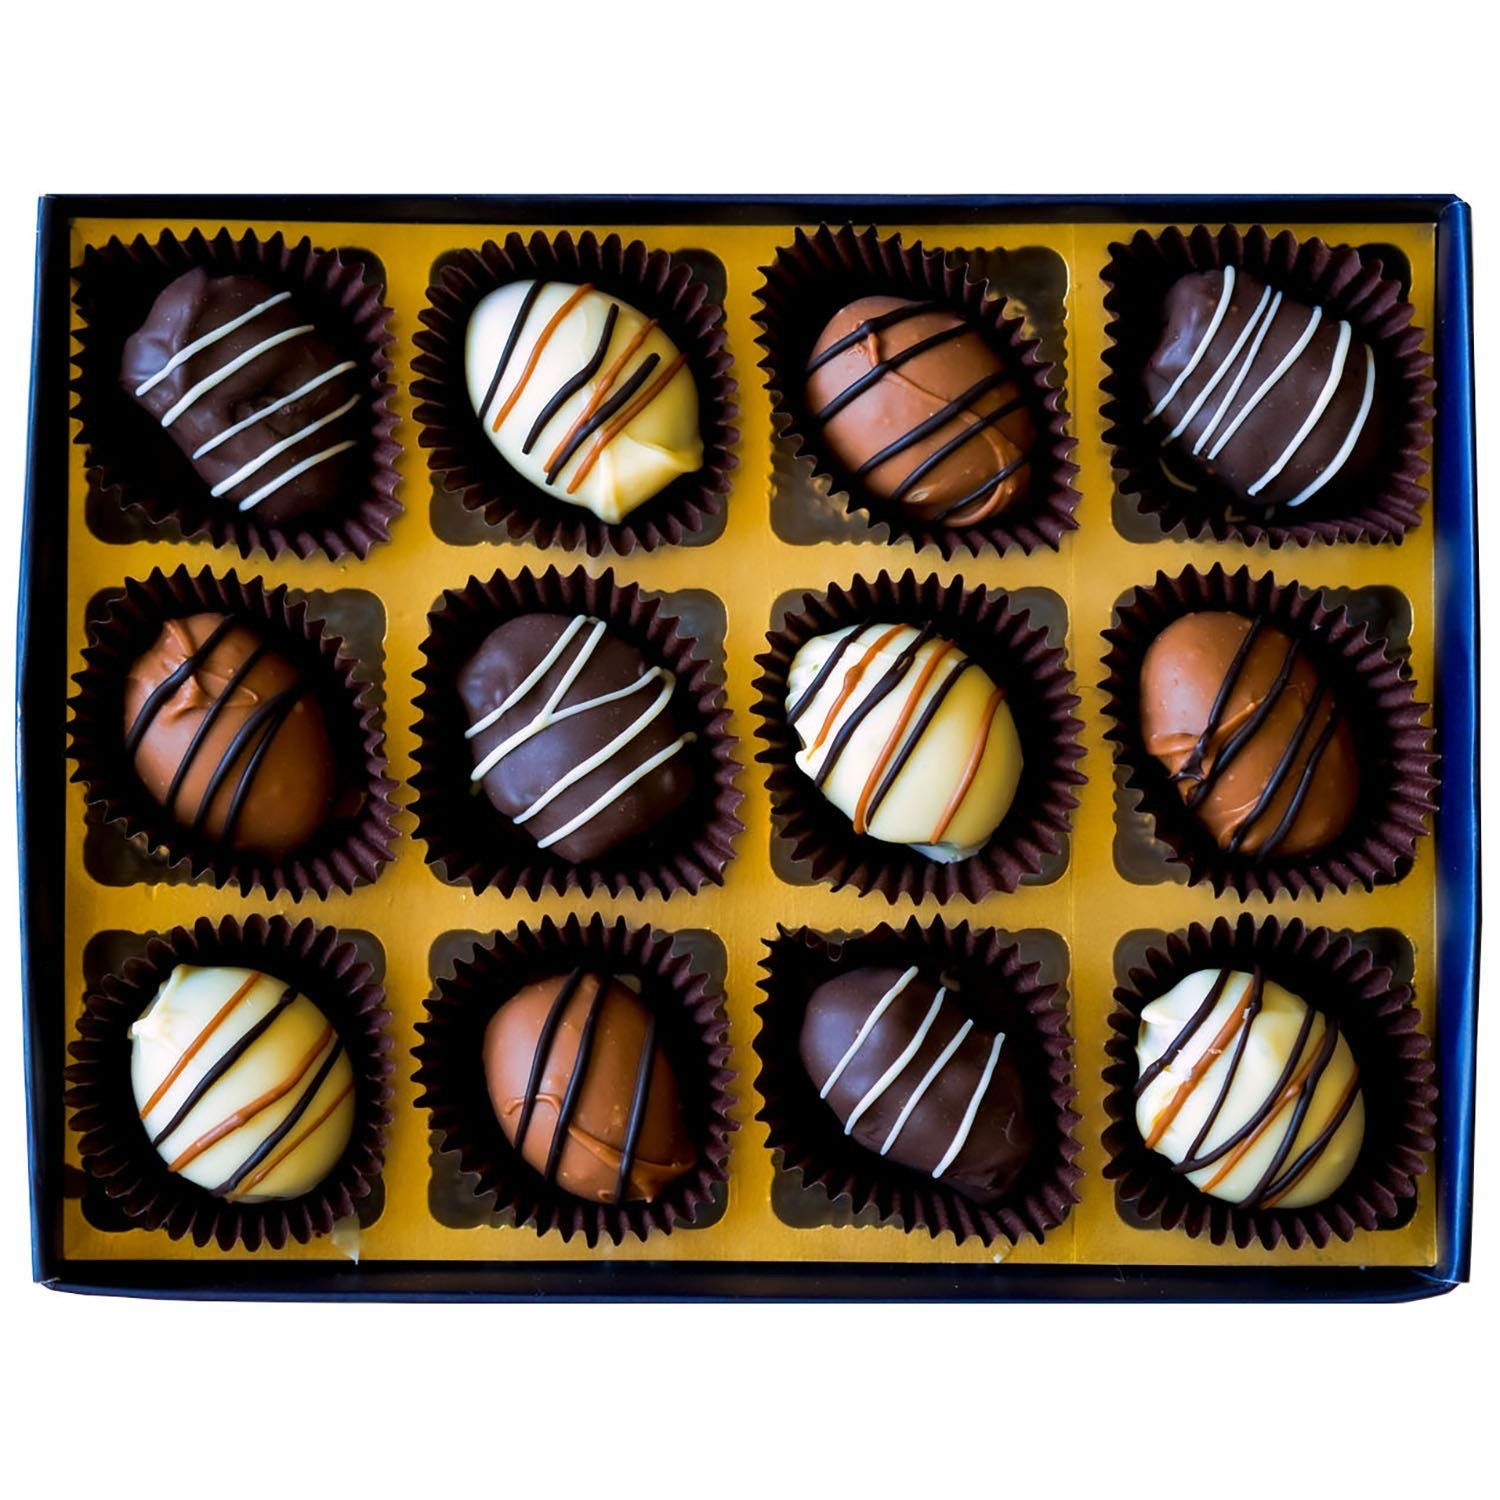 A box of date and almond chocolate truffles